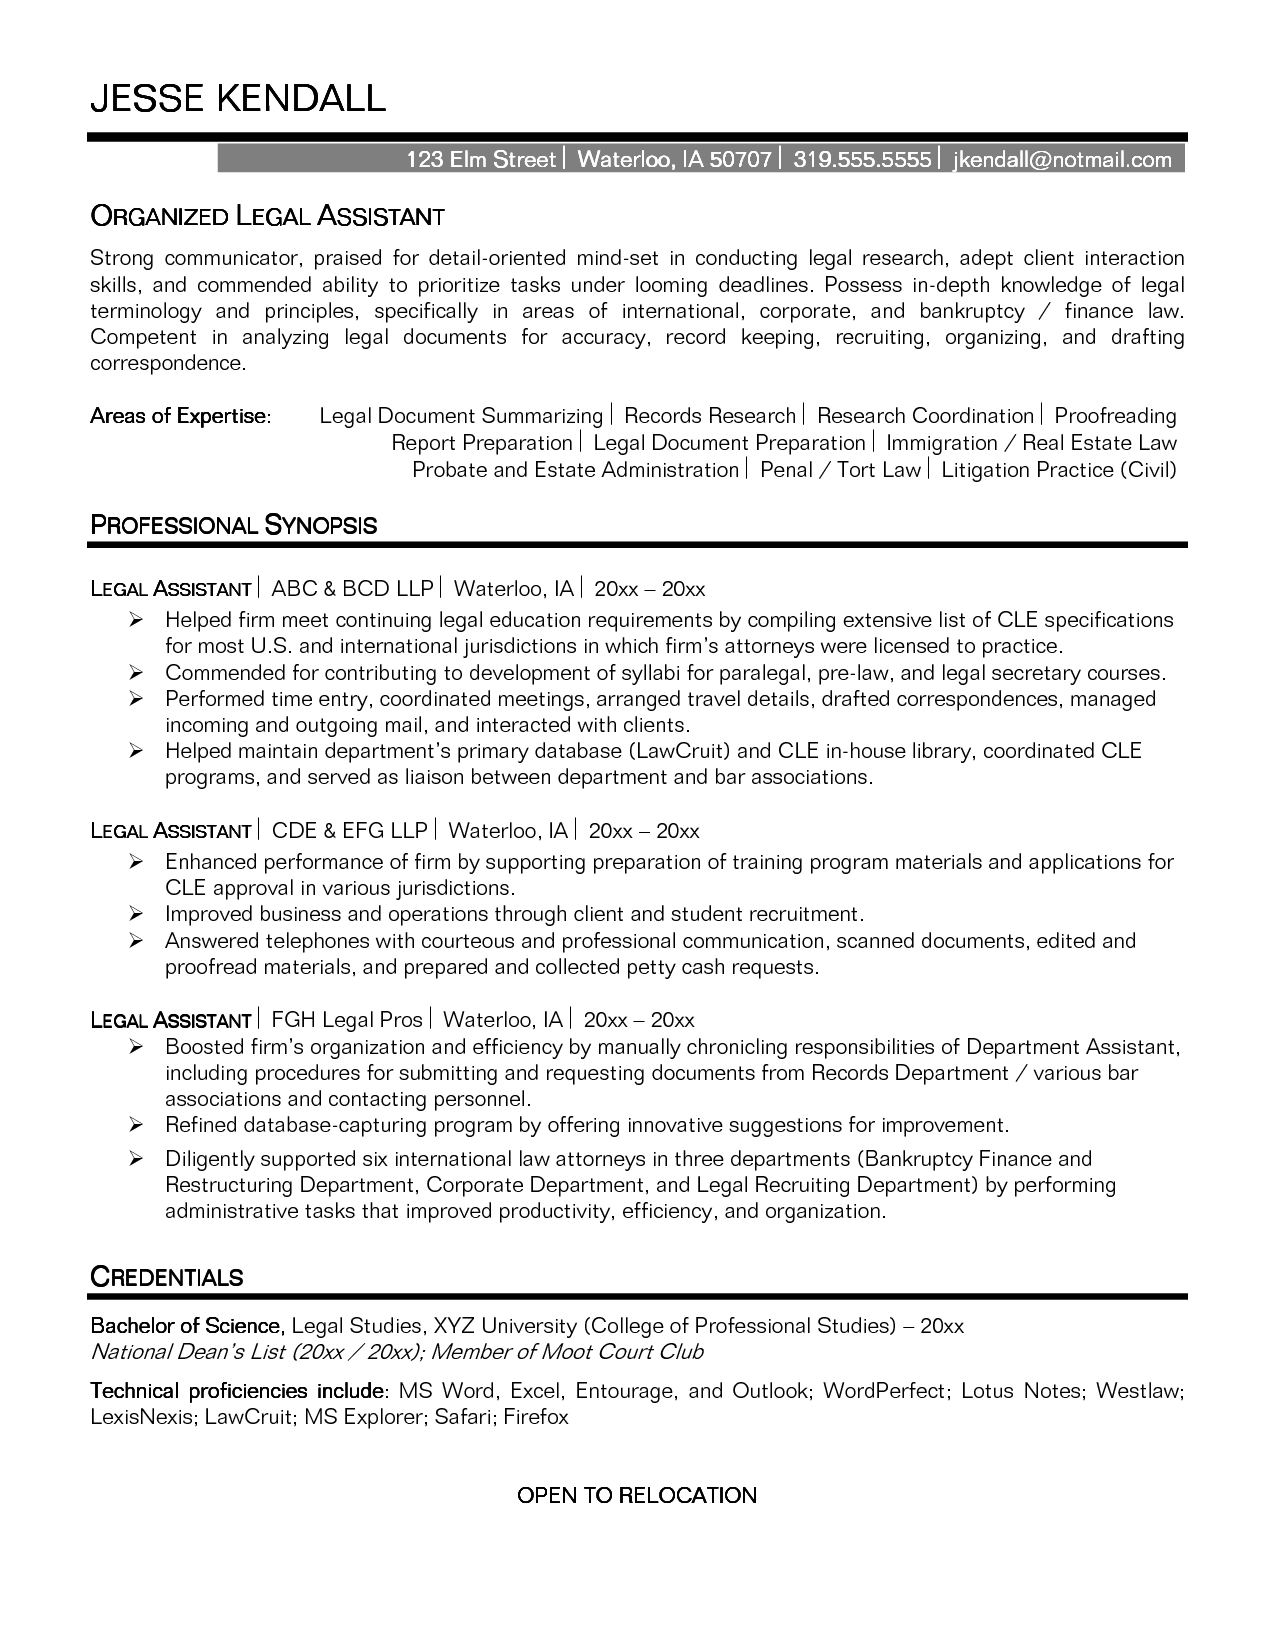 Objectives On A Resume Objective Sample Resume Office Assistant Paralegal Objectives